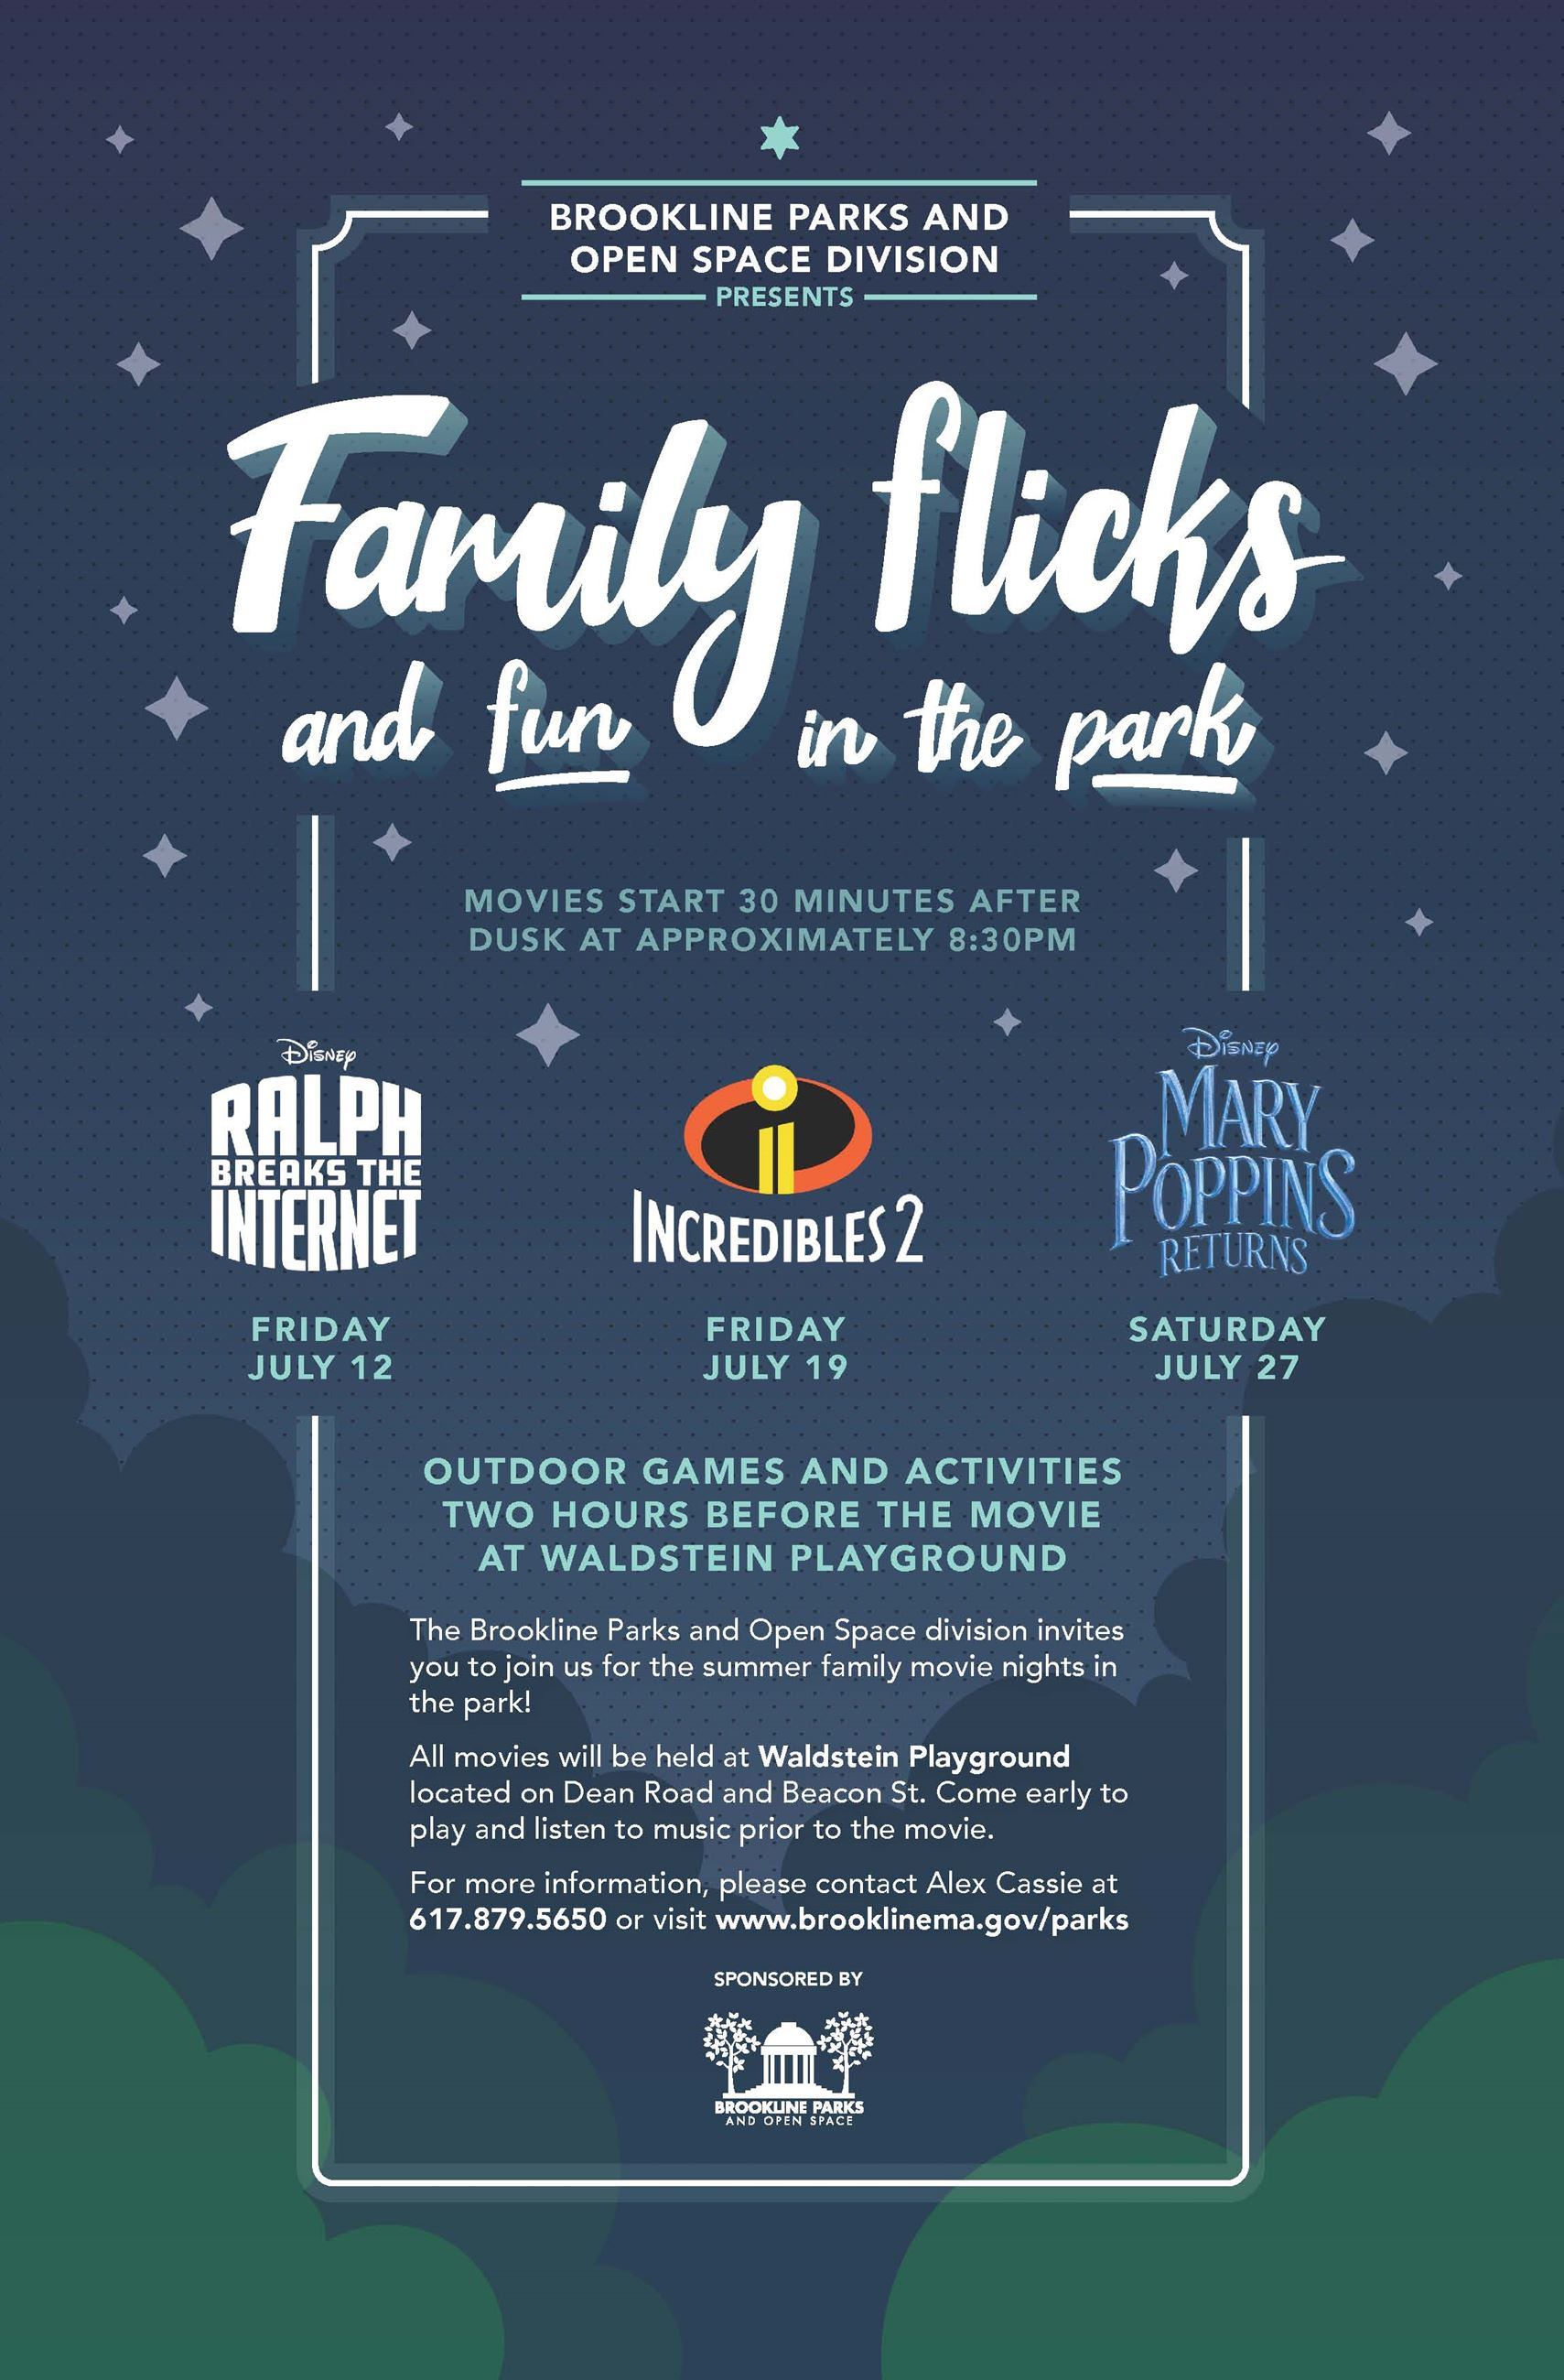 Family Flicks and fun in the park. Movies start appox. at 8:30 PM.